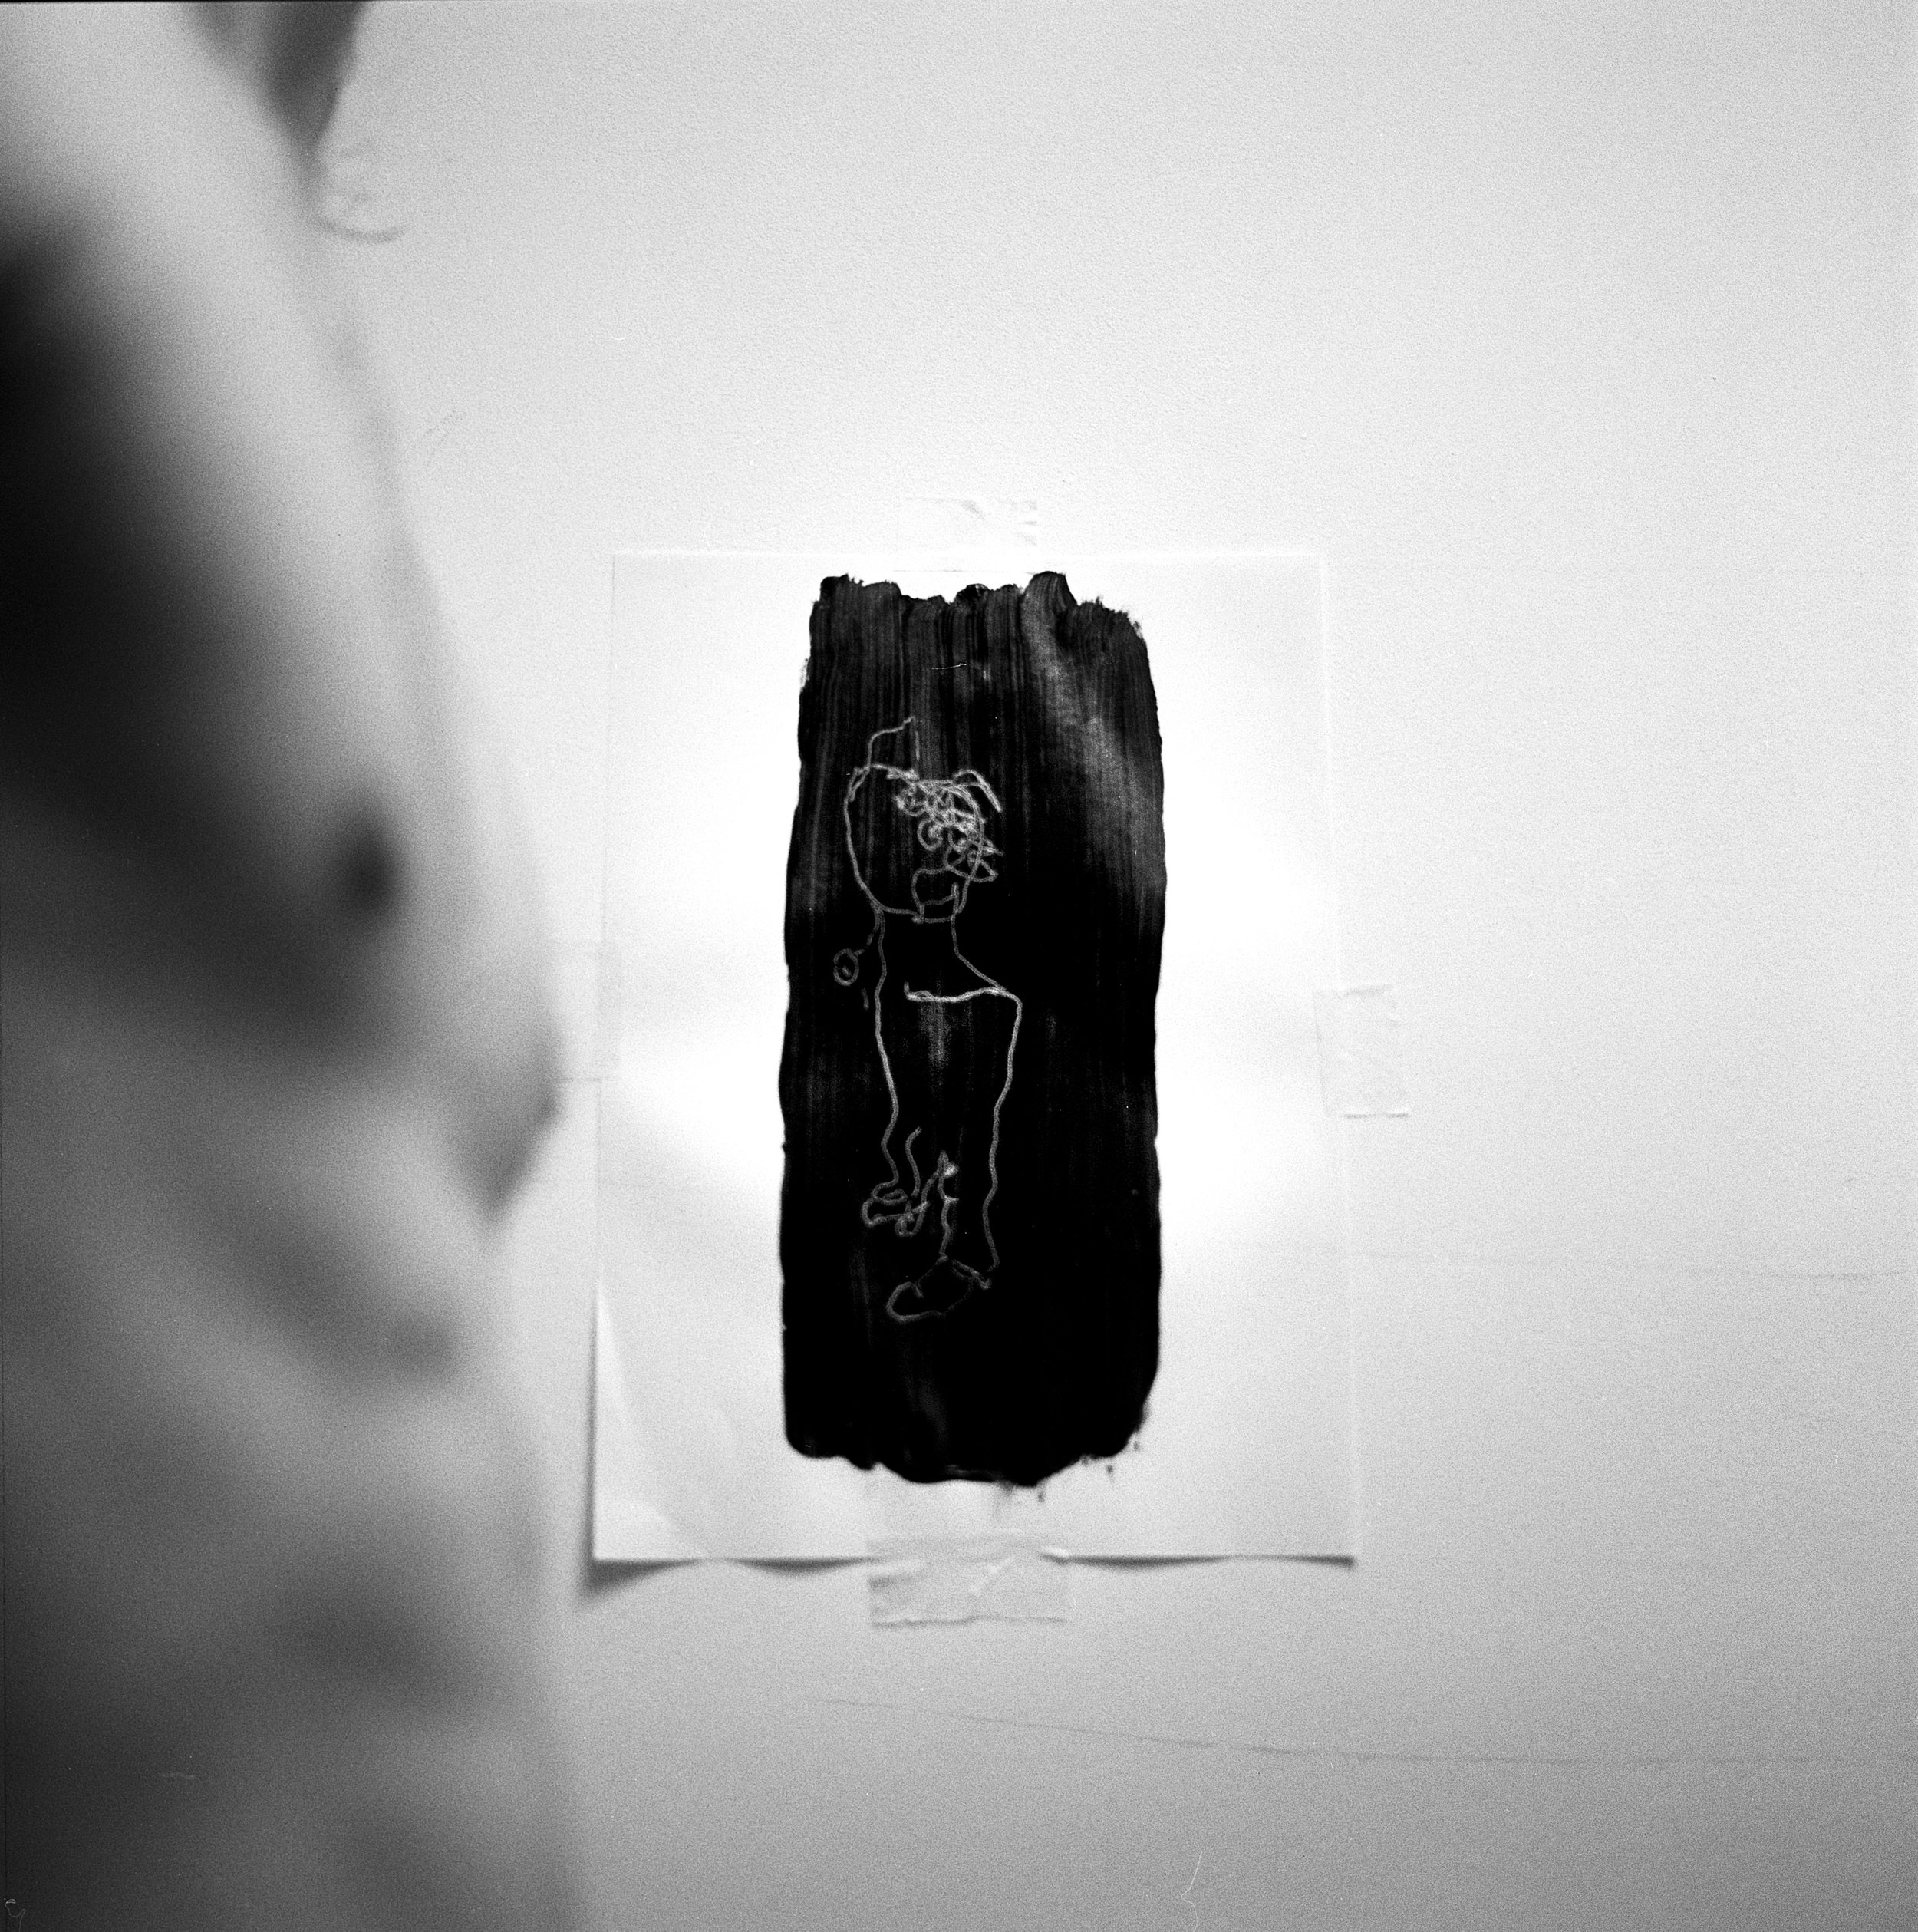 Rebecca Rose Harris, A Portrait of Blue, Analogue Photography, Black and white, conceptual art